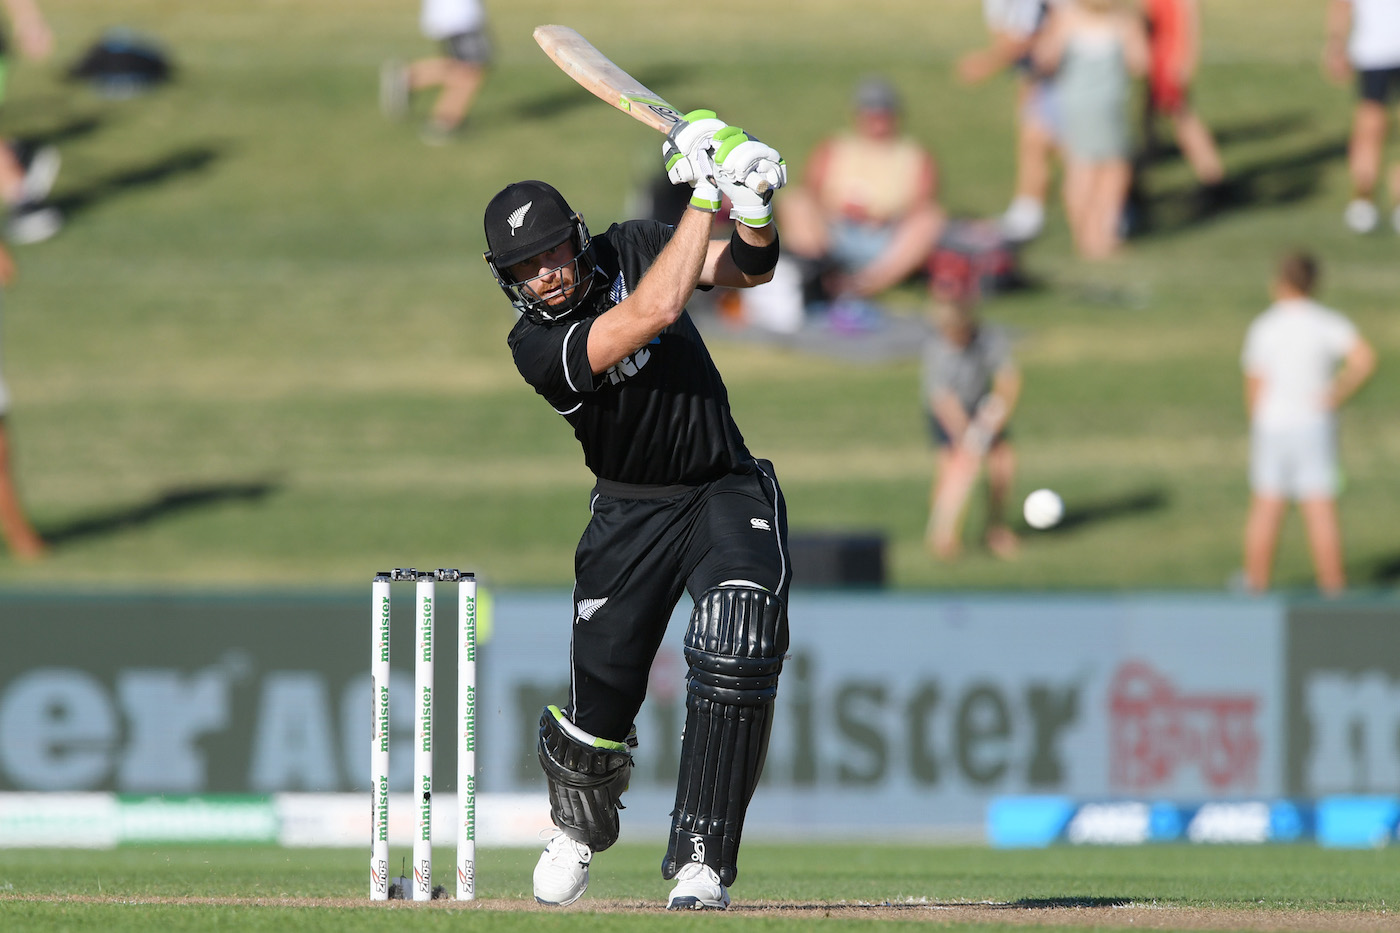 New Zealand beat Bangladesh by 8 wickets (with 33 balls